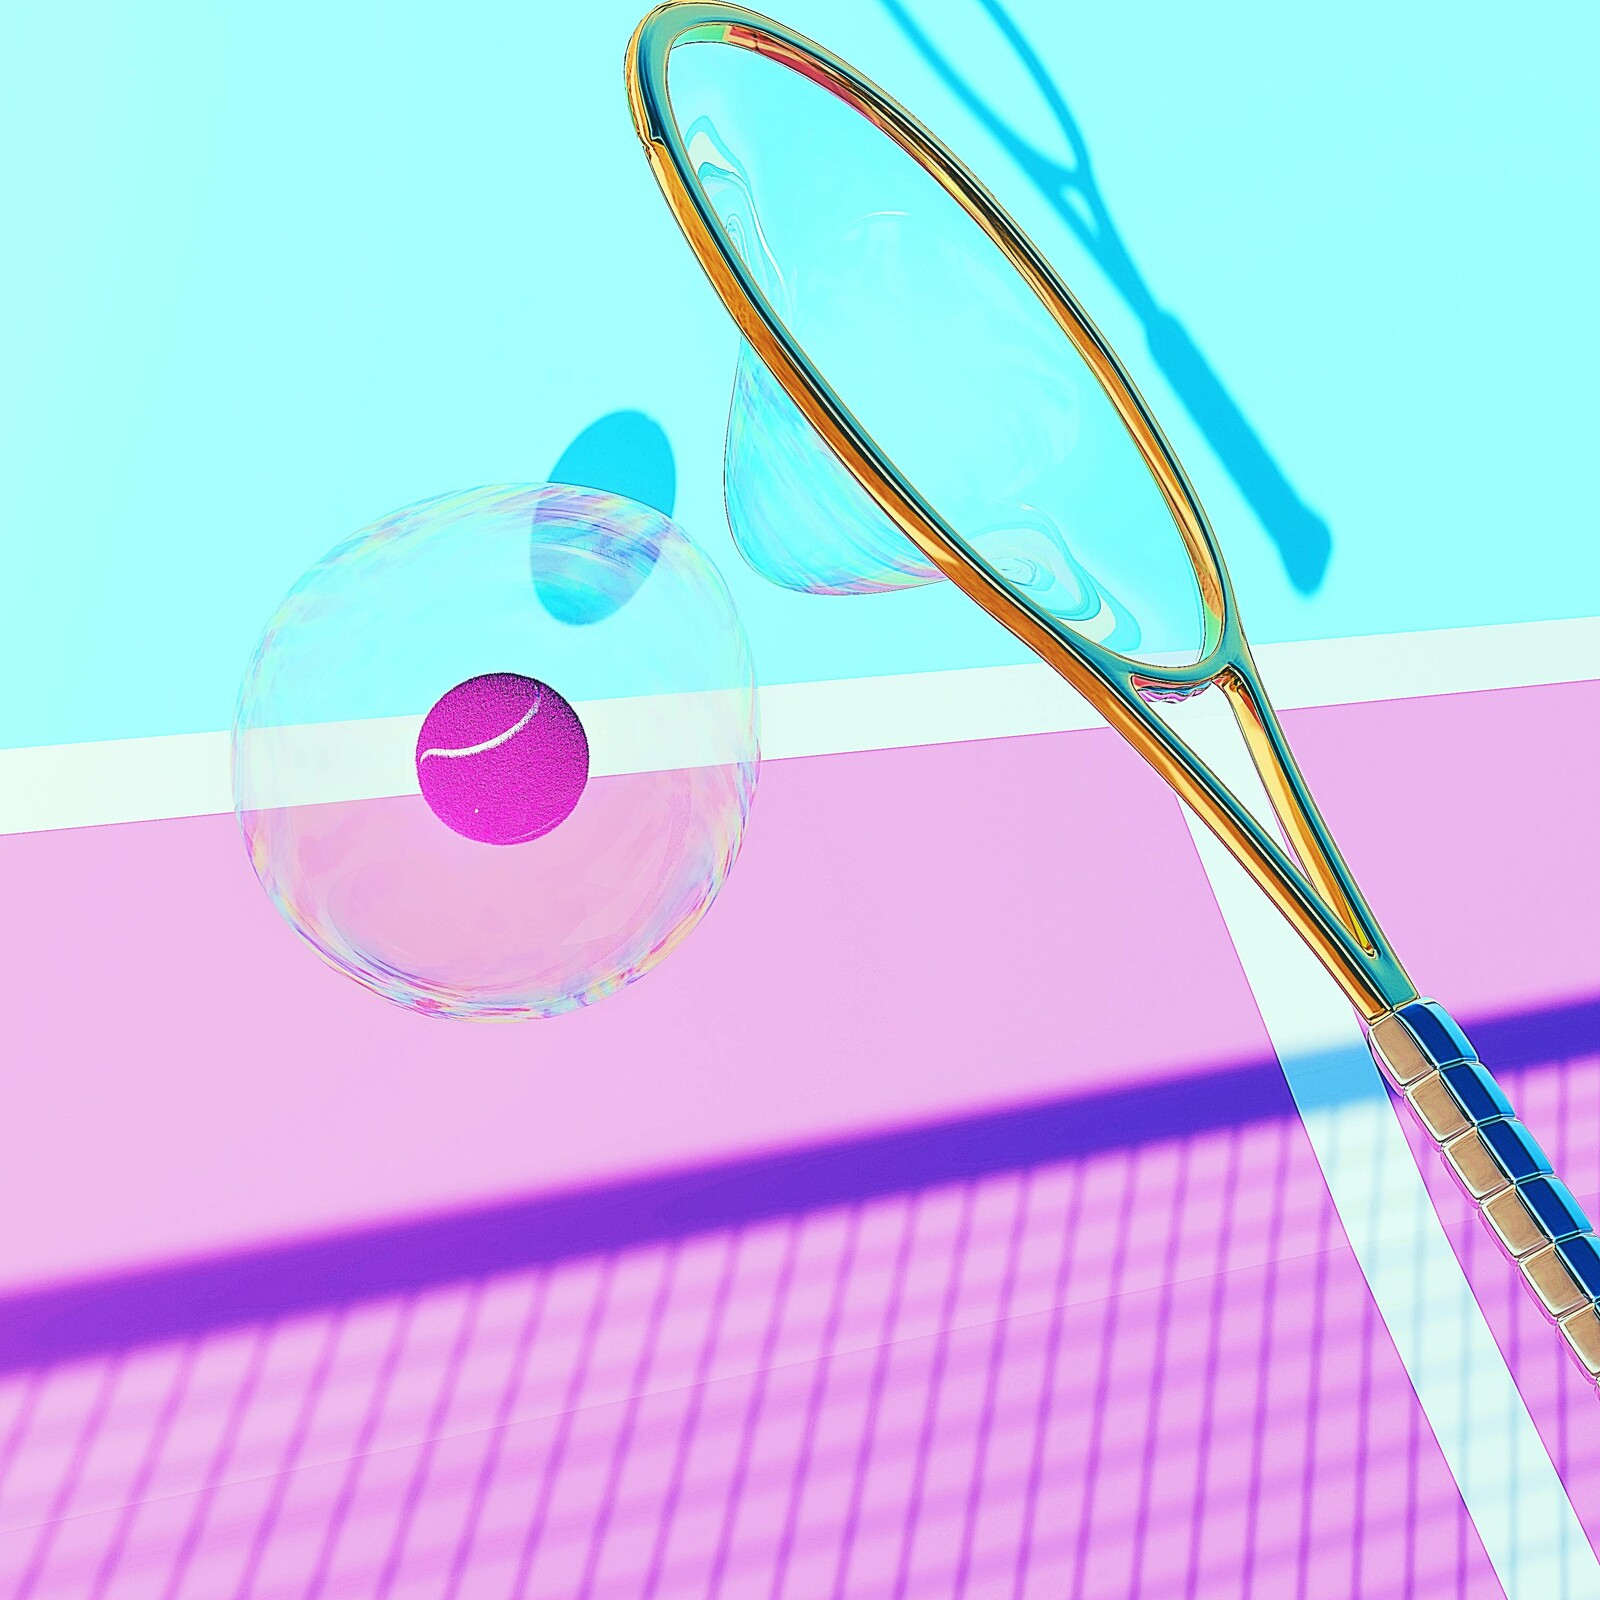 tennis bubbles